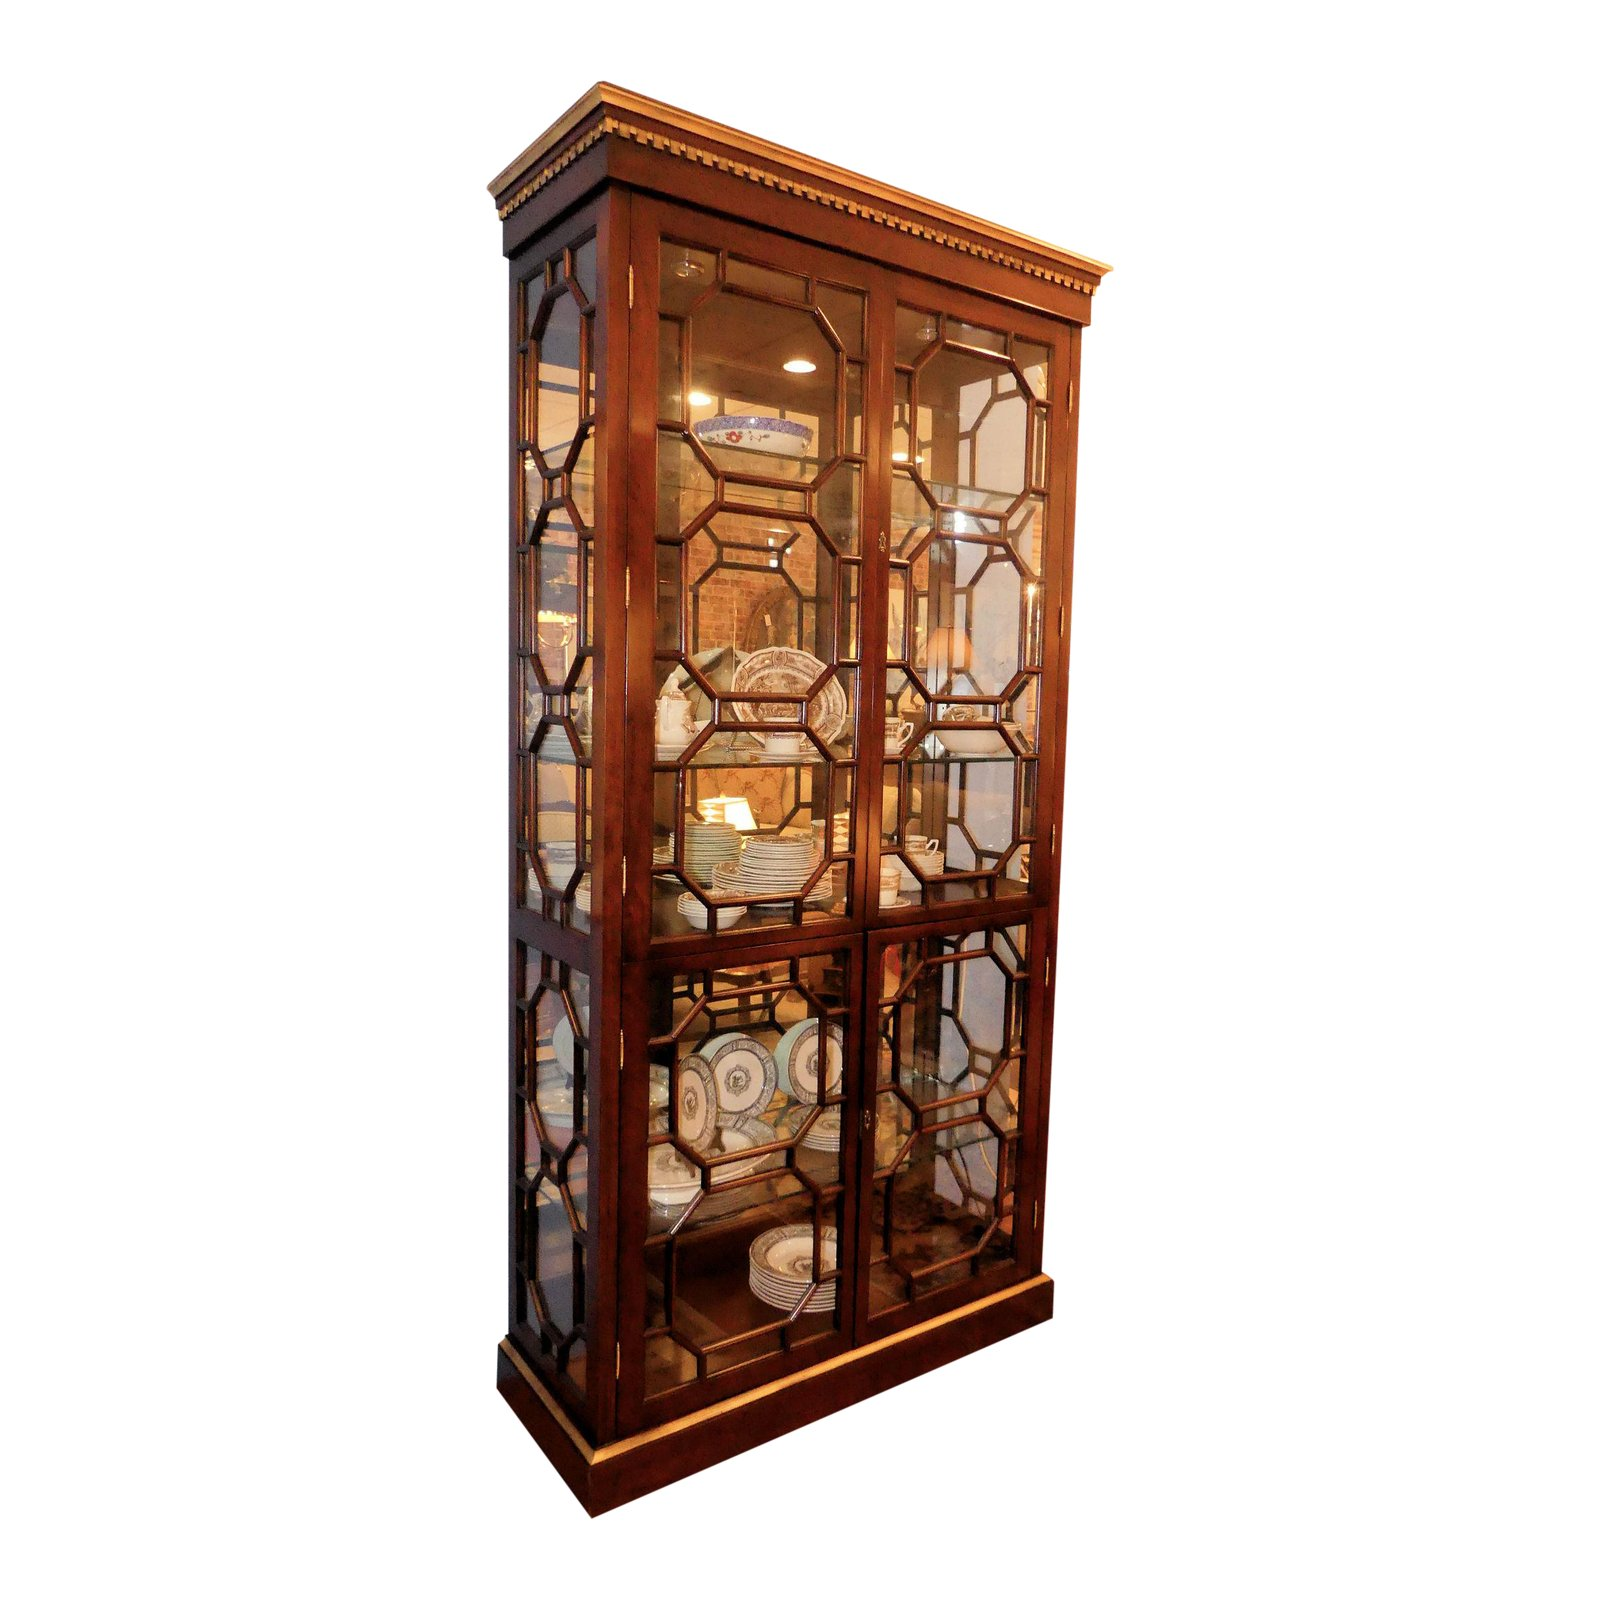 Contemporary Lighted China Curio Display Cabinet with Fretwork